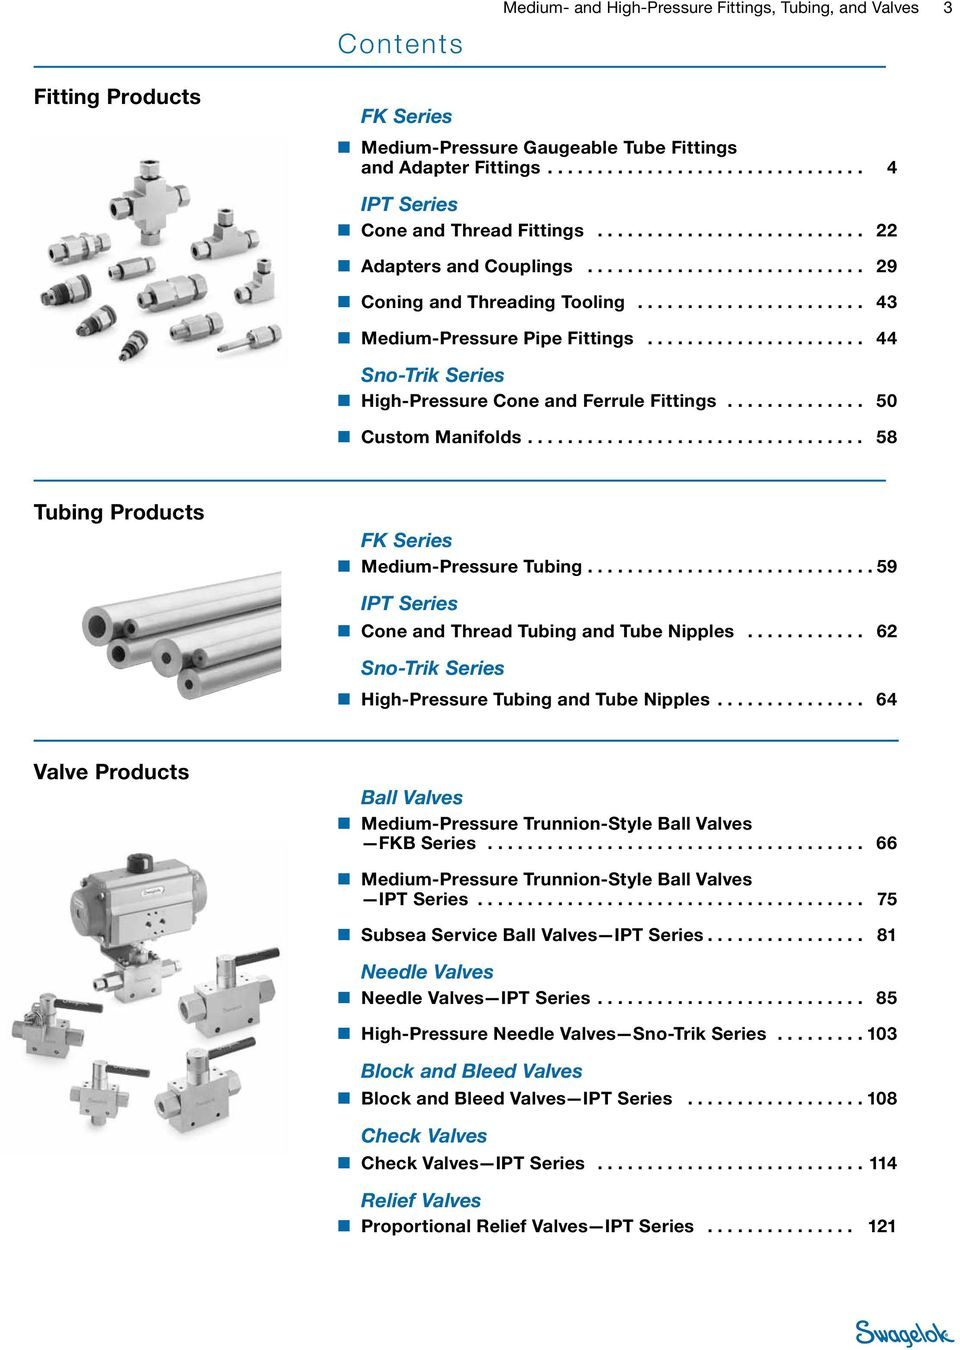 ............................ 59 IPT Series Cone and Thread Tubing and Nipples... 62 Sno-Trik Series High- Tubing and Nipples.